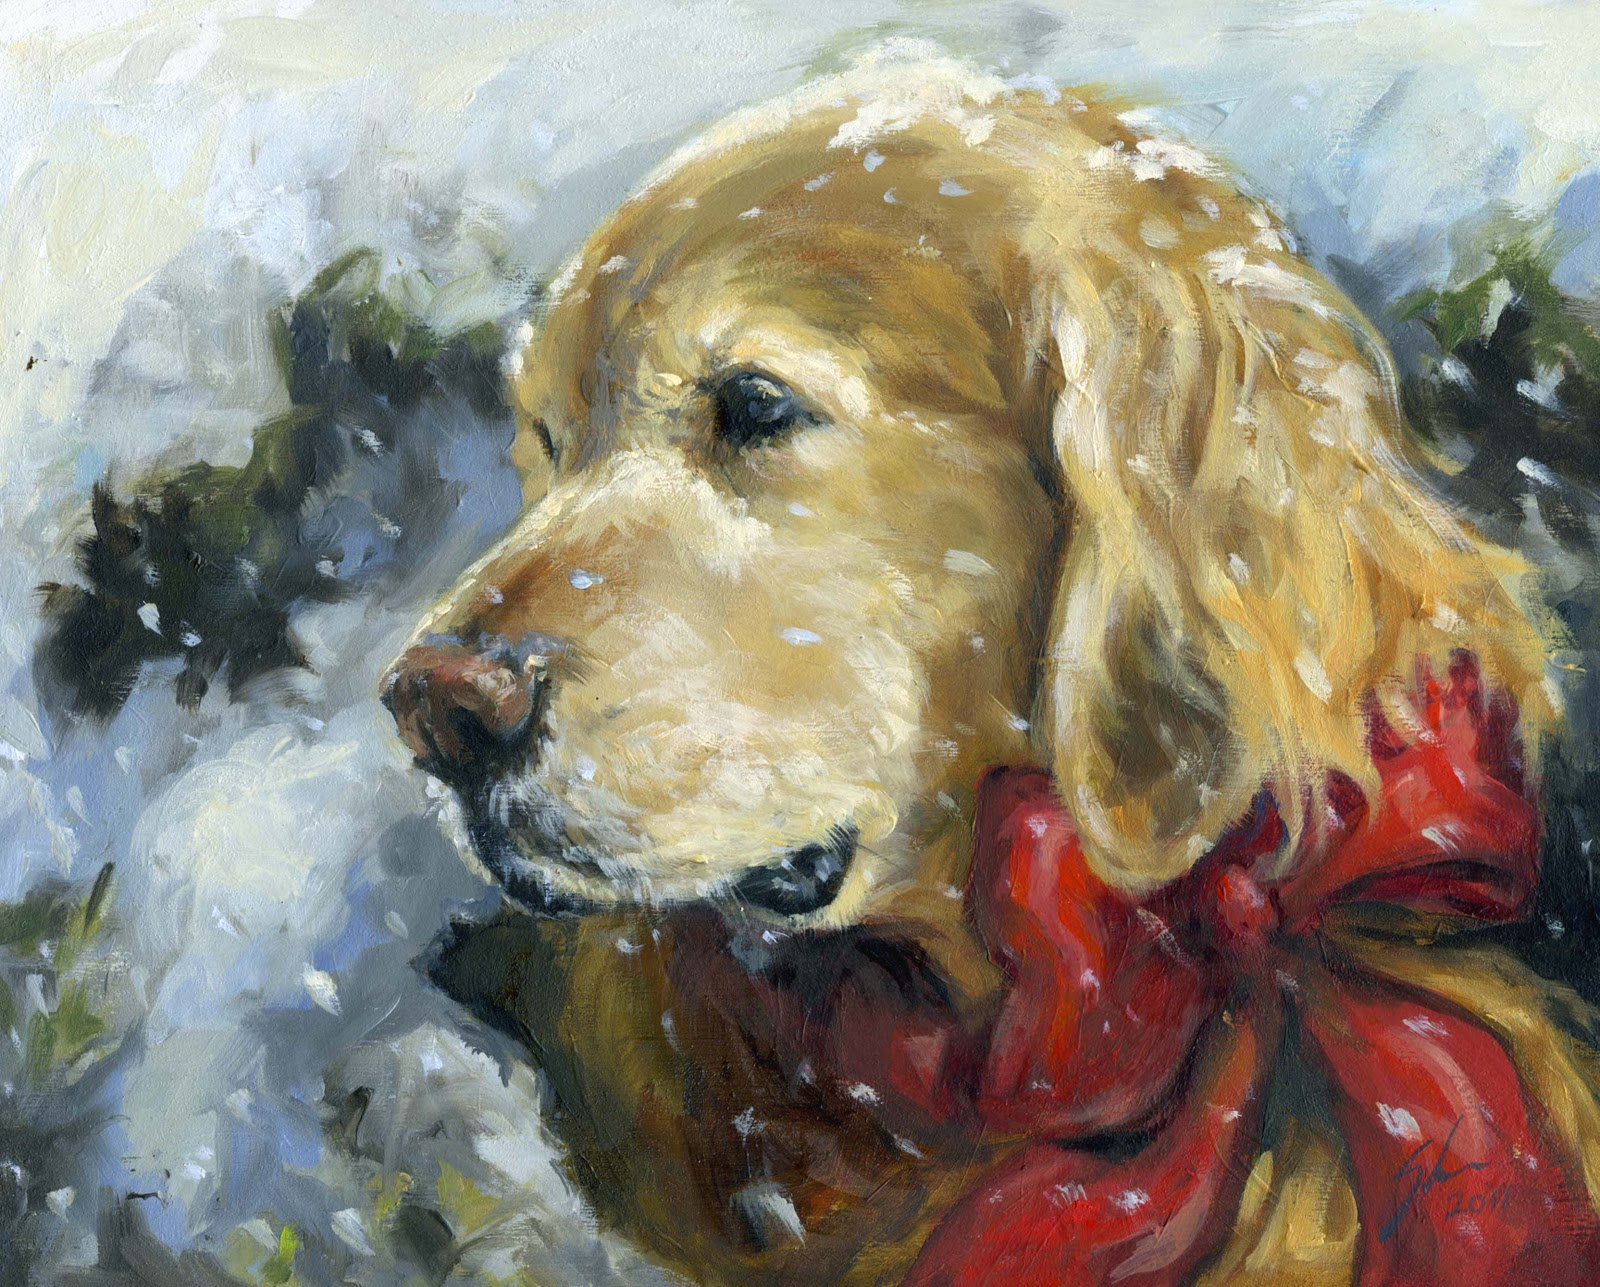 golden retriever rescue holiday card artwork 2011